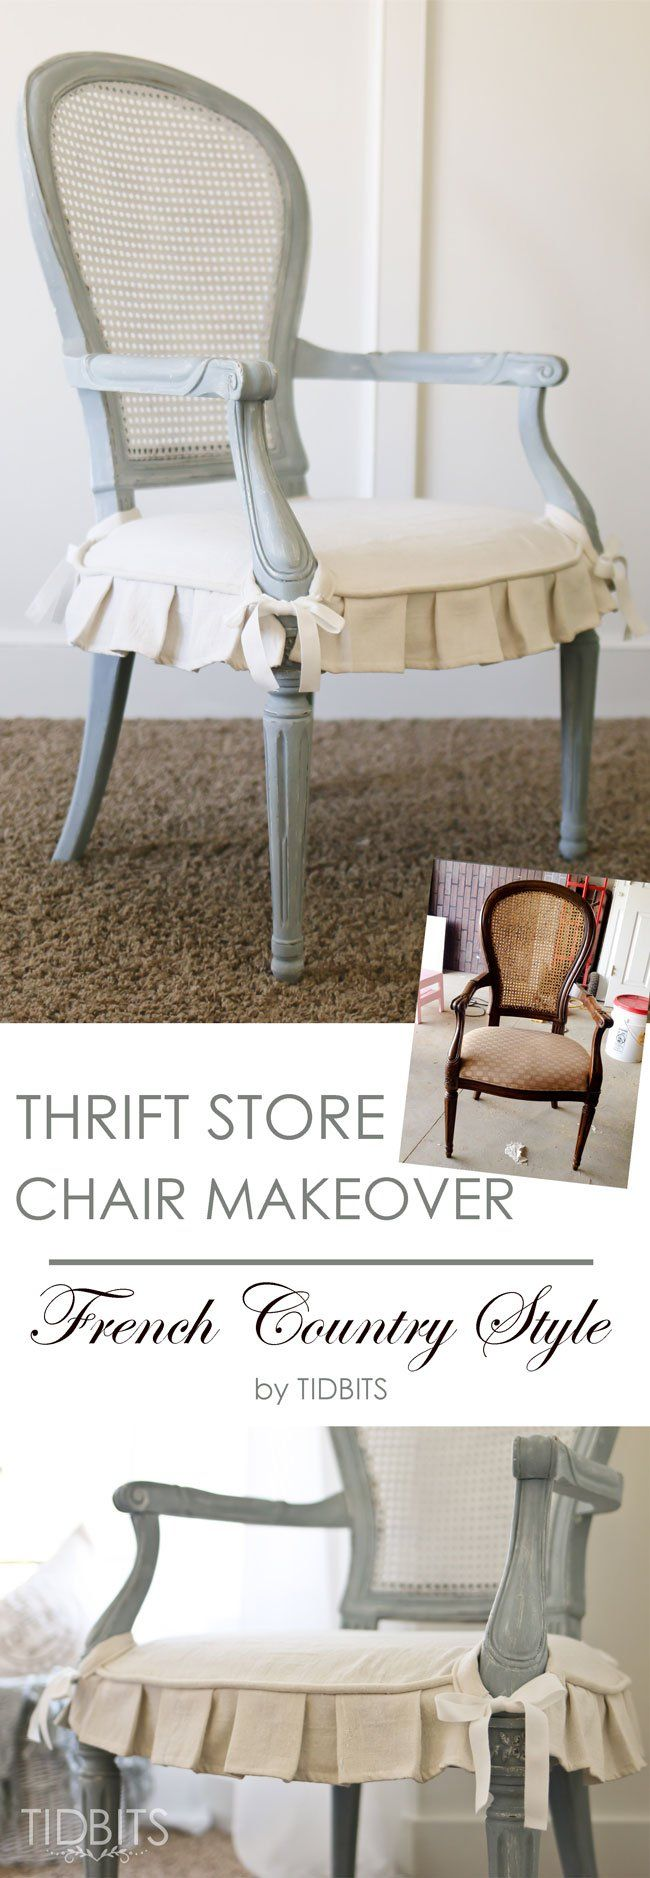 thrift store chair makeover see more ideas about chair makeover and french country style. Black Bedroom Furniture Sets. Home Design Ideas